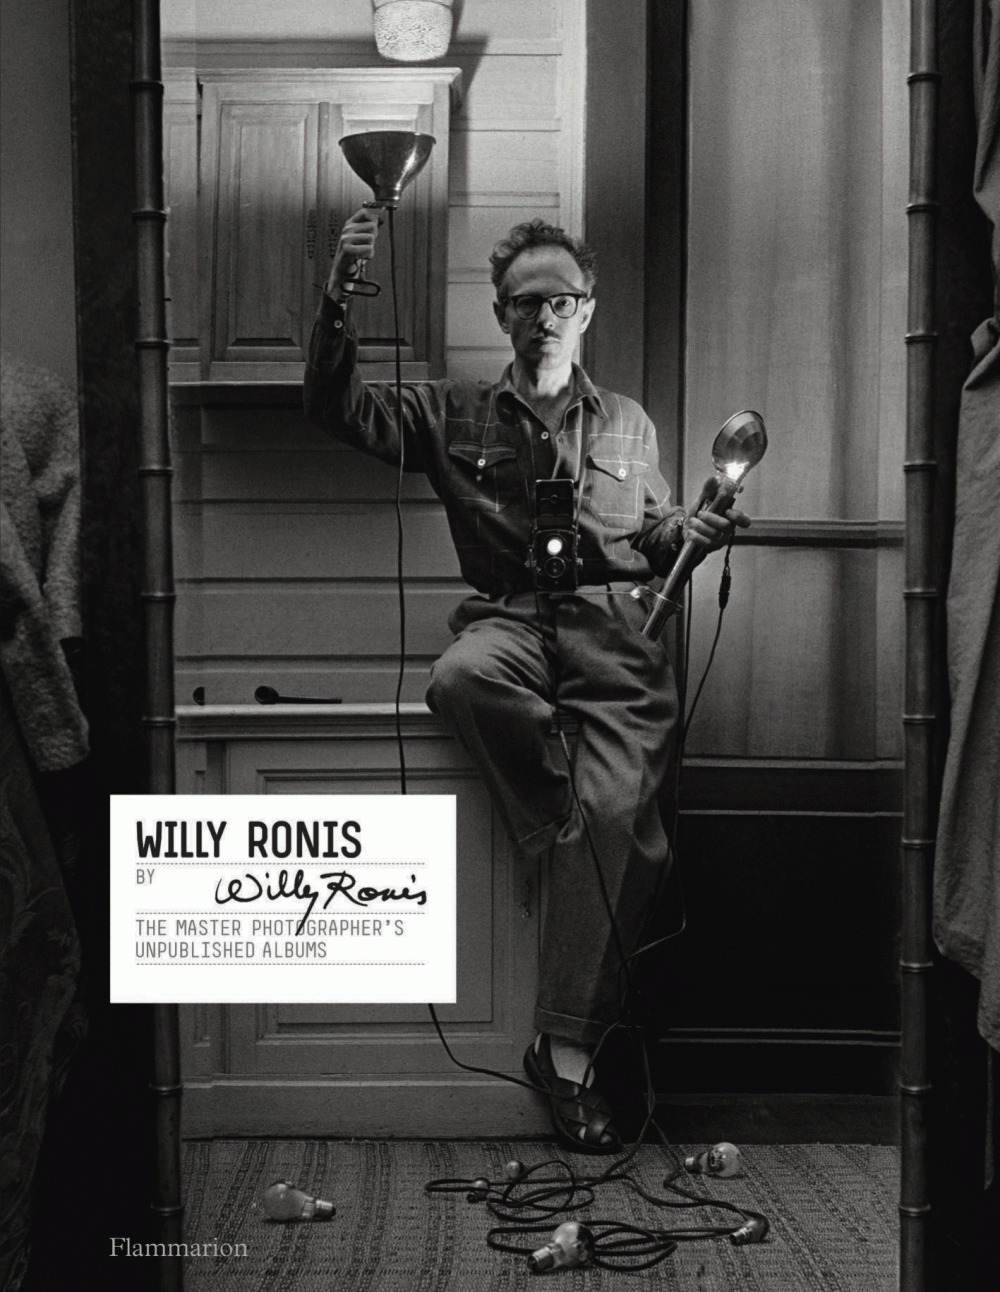 Willy Ronis by Willy Ronis